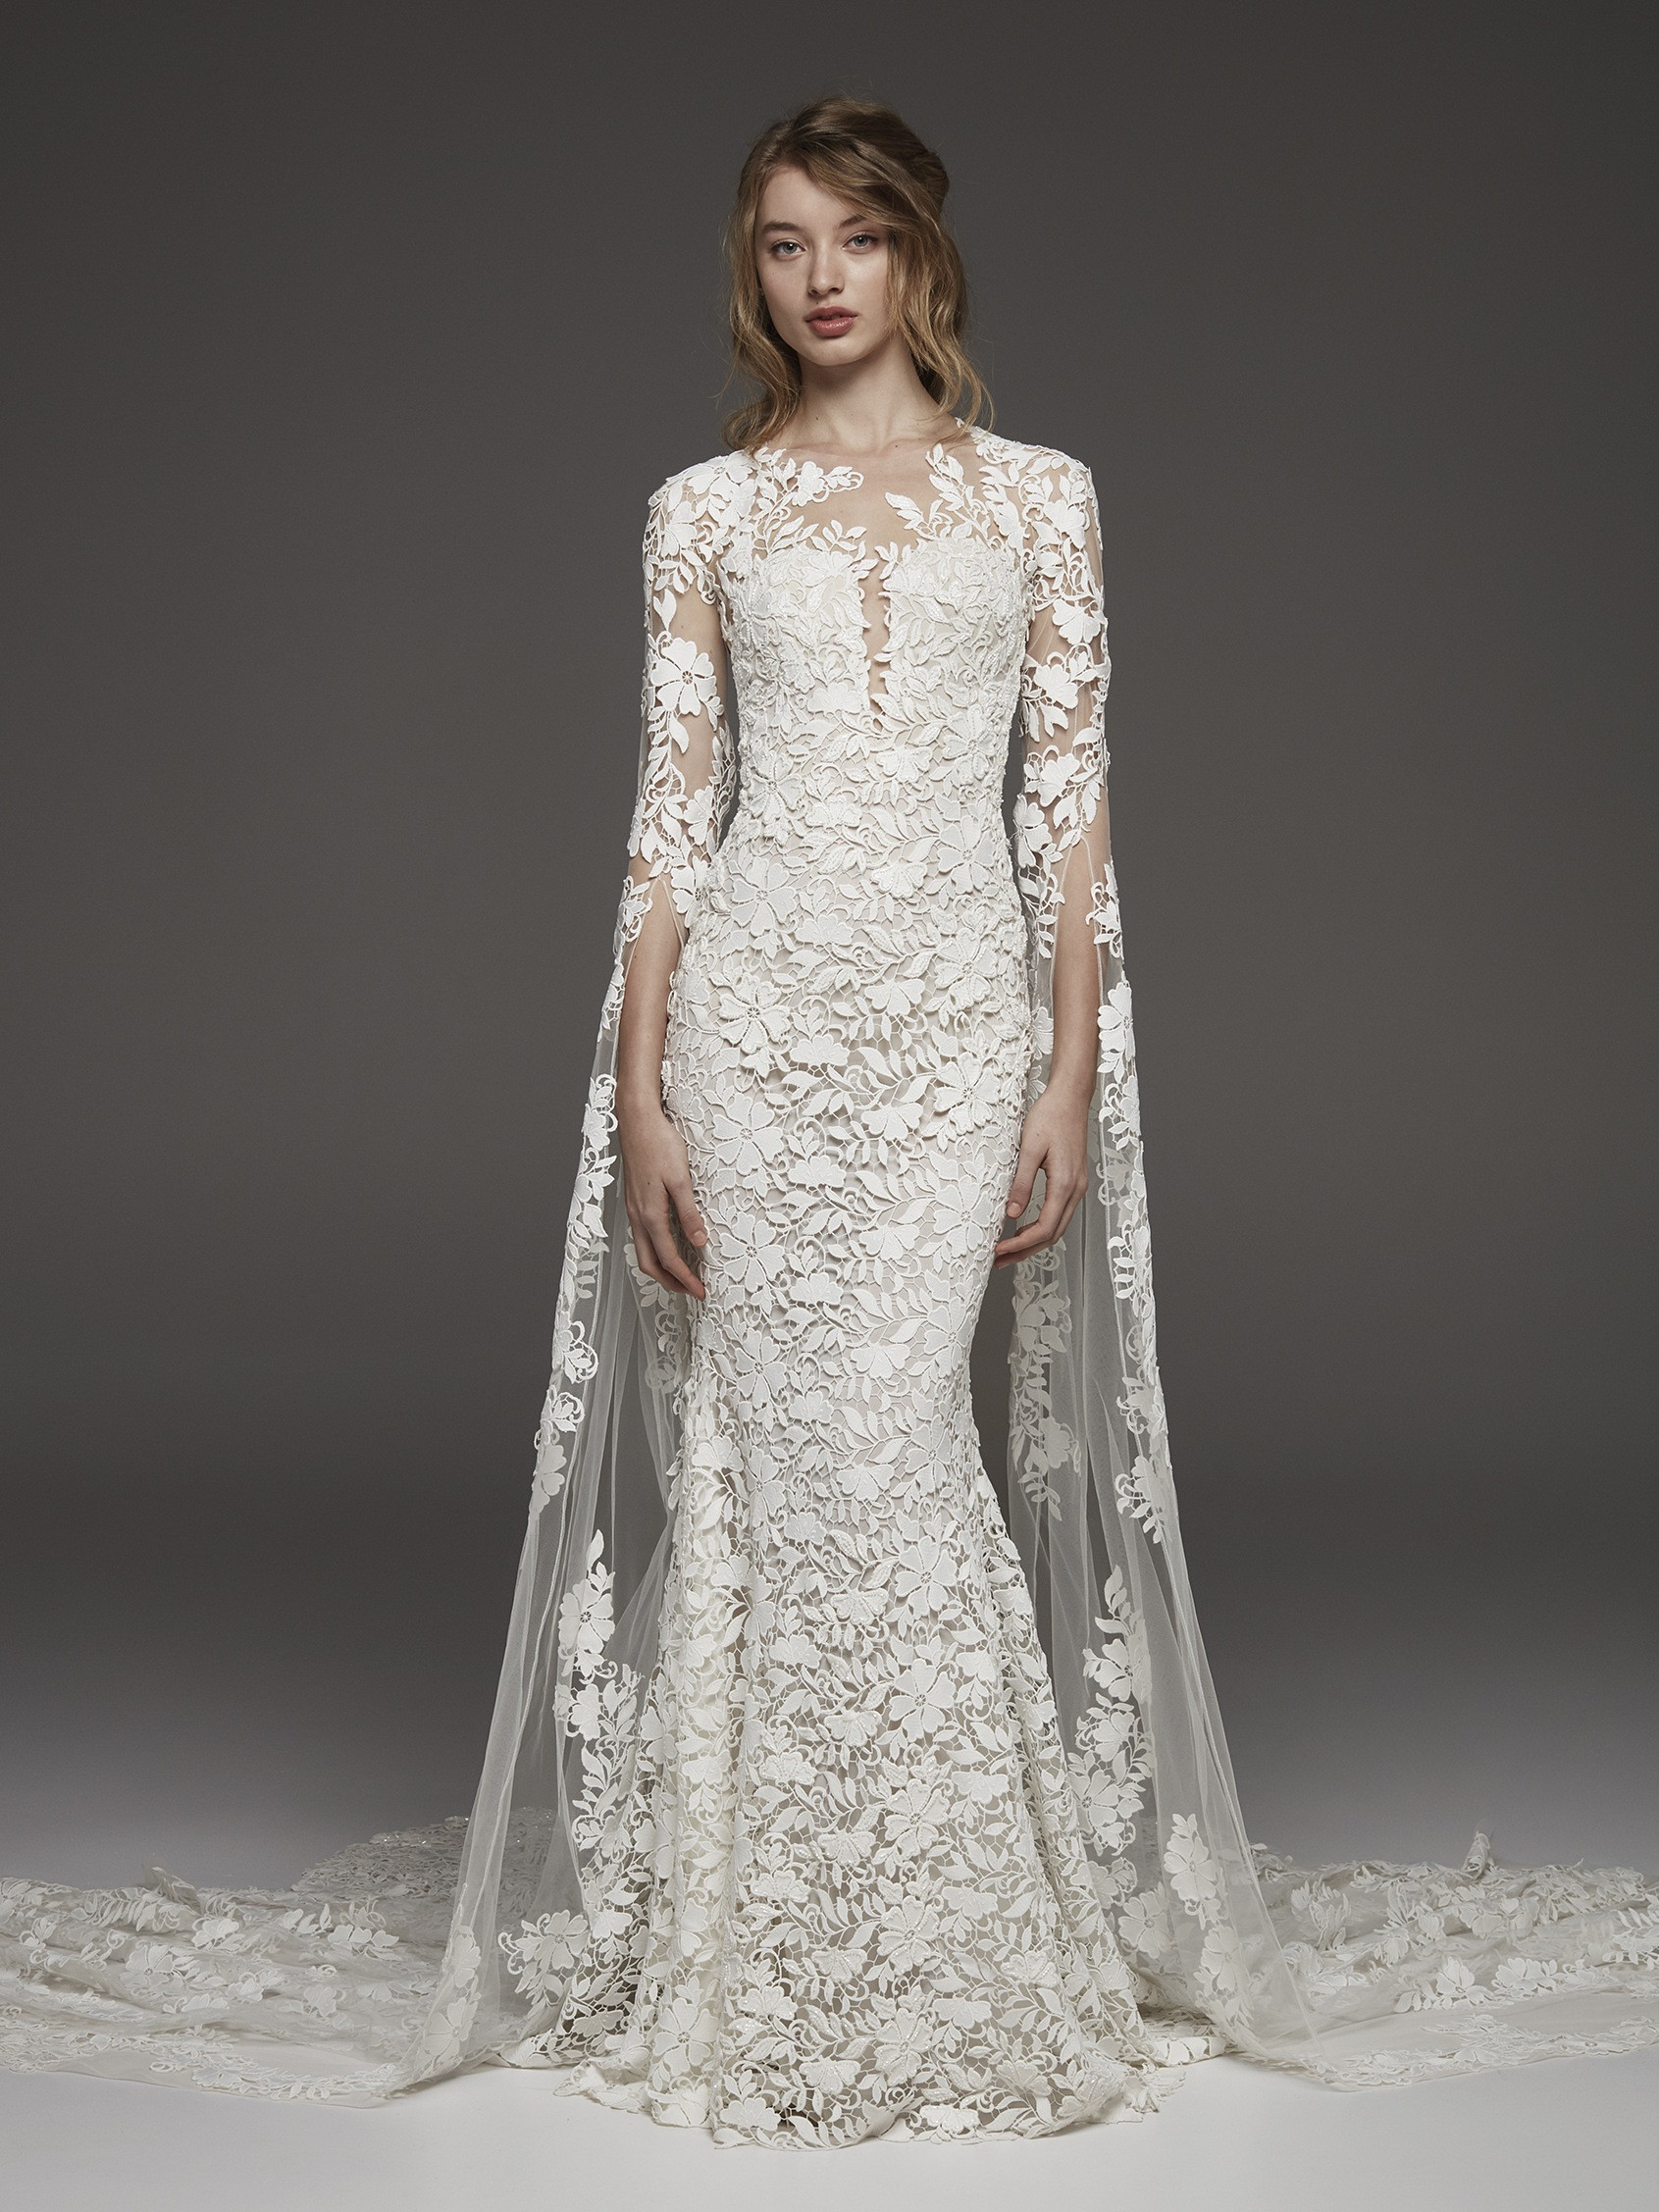 Couture 3/4 Sleeve Lace Detailed Sheath Wedding Dress | Kleinfeld Bridal